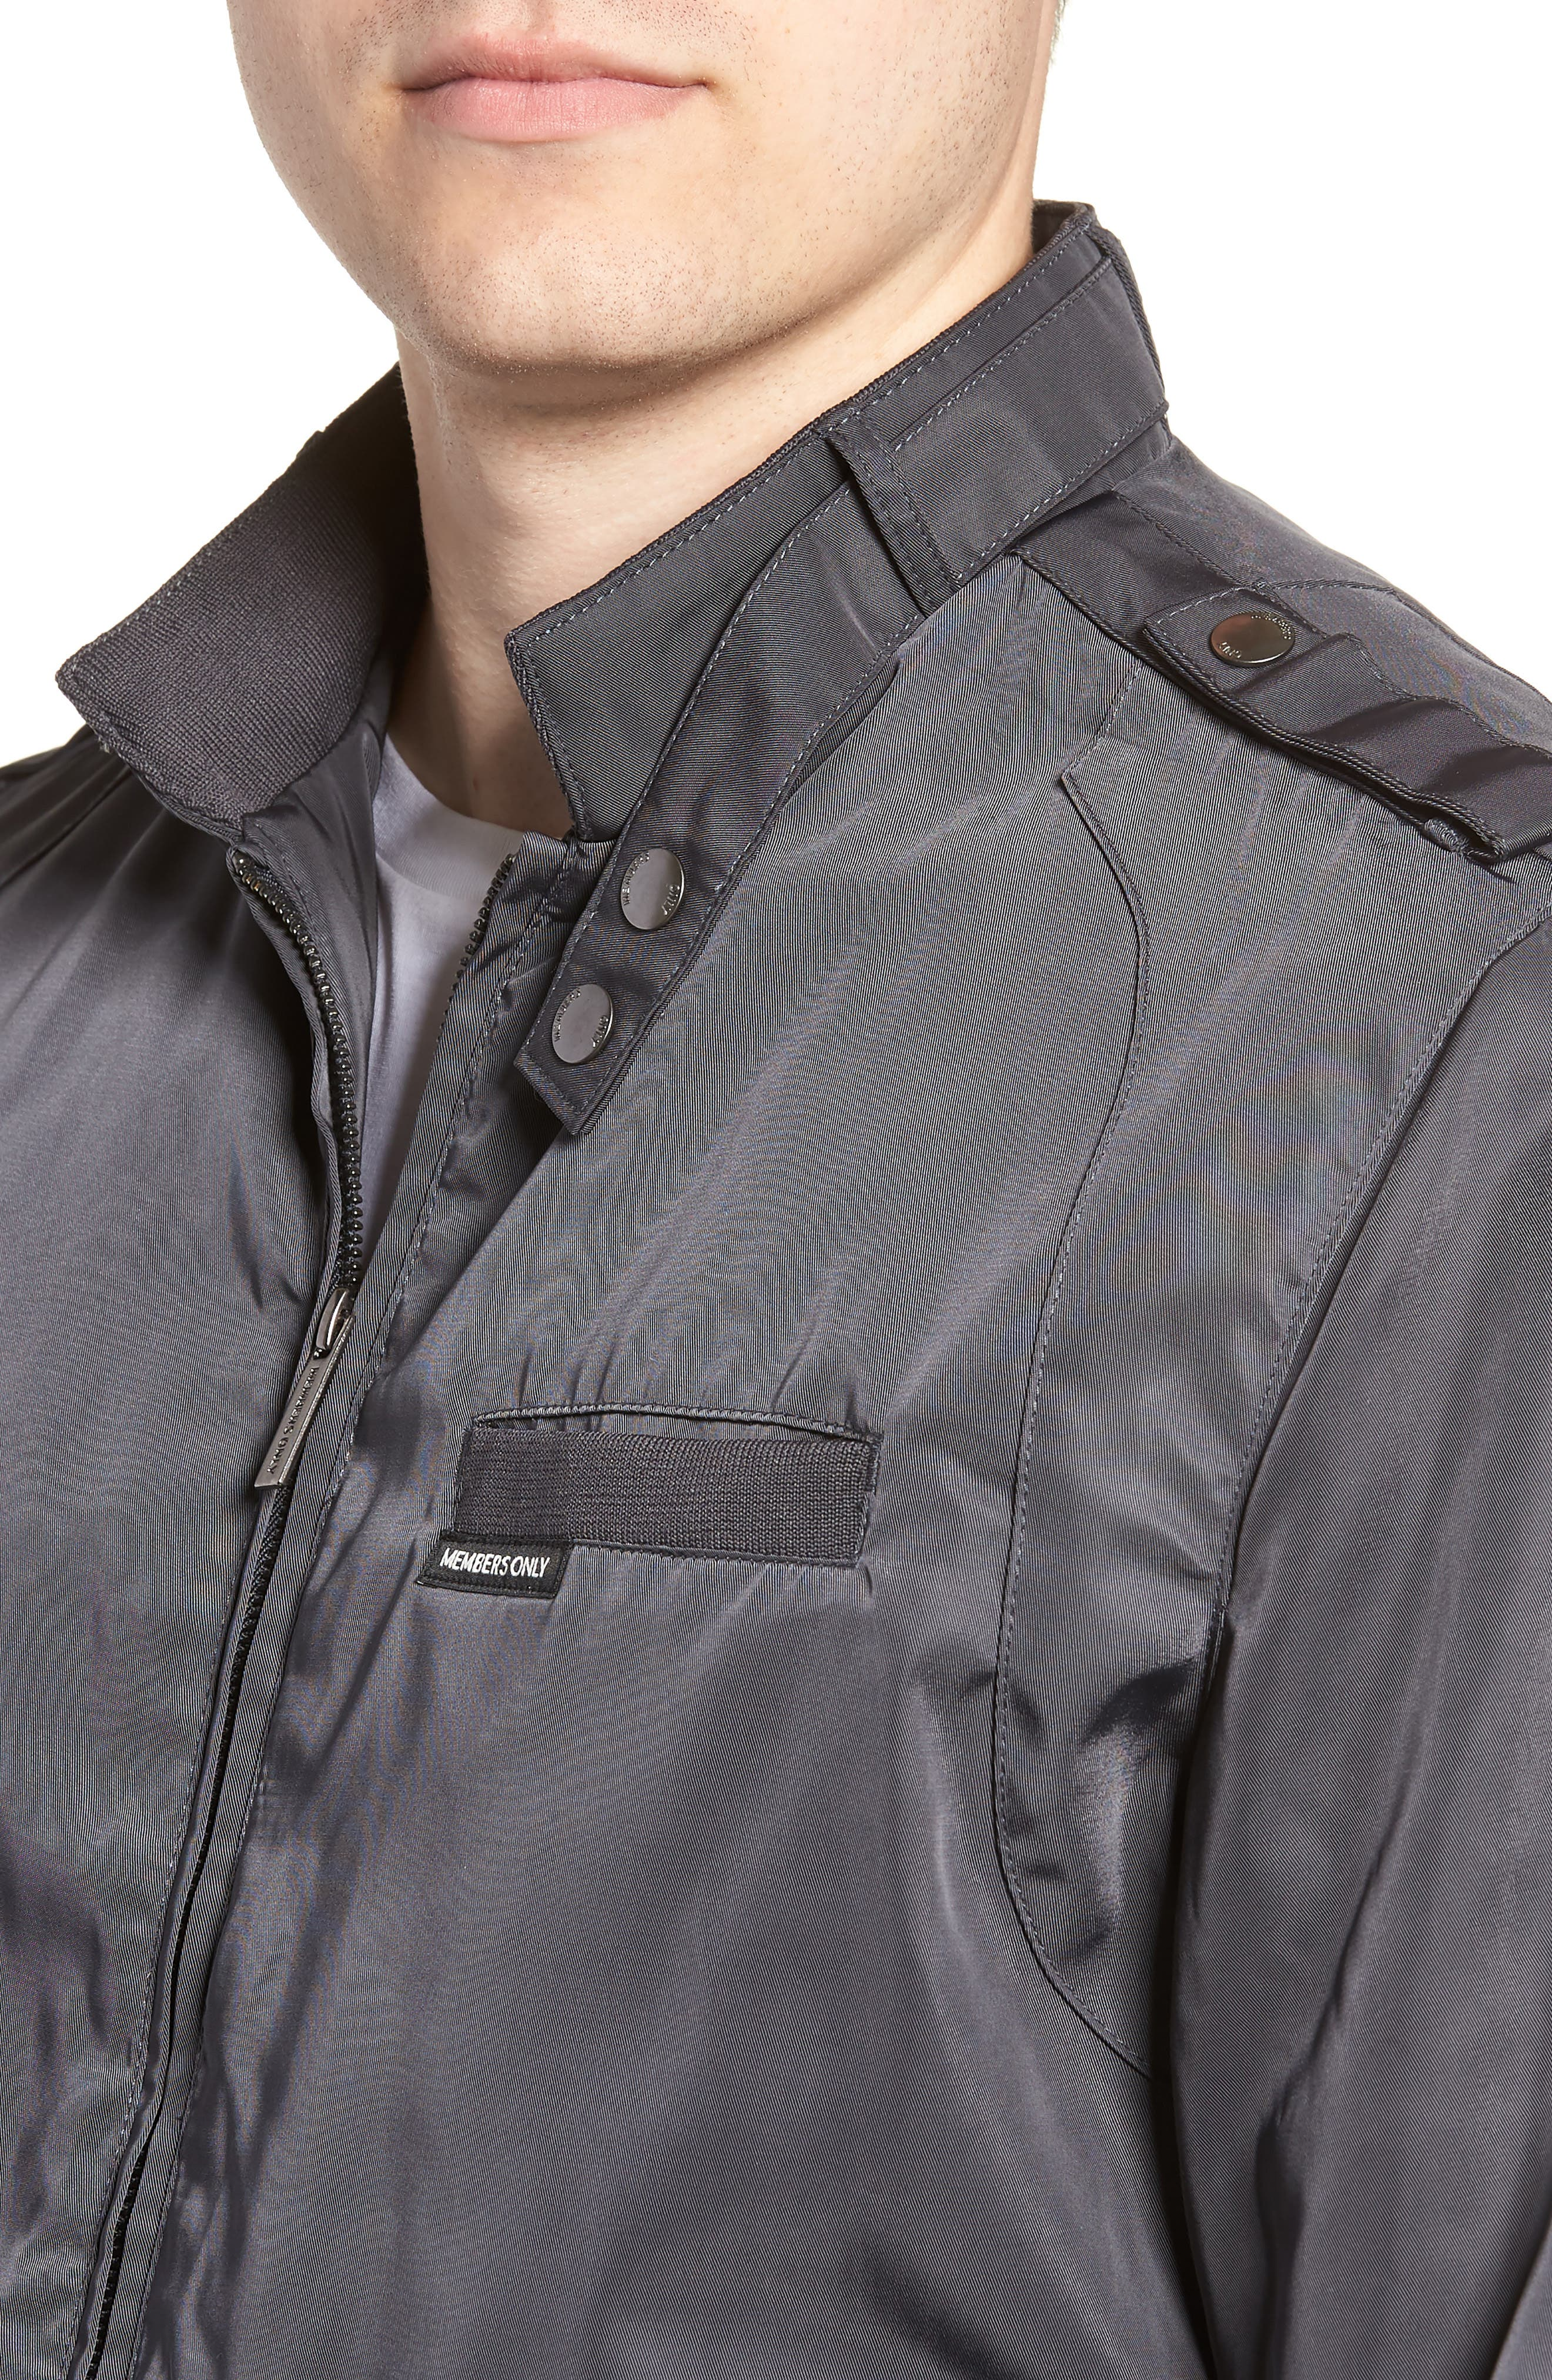 Iconic Racer Jacket,                             Alternate thumbnail 4, color,                             CHARCOAL